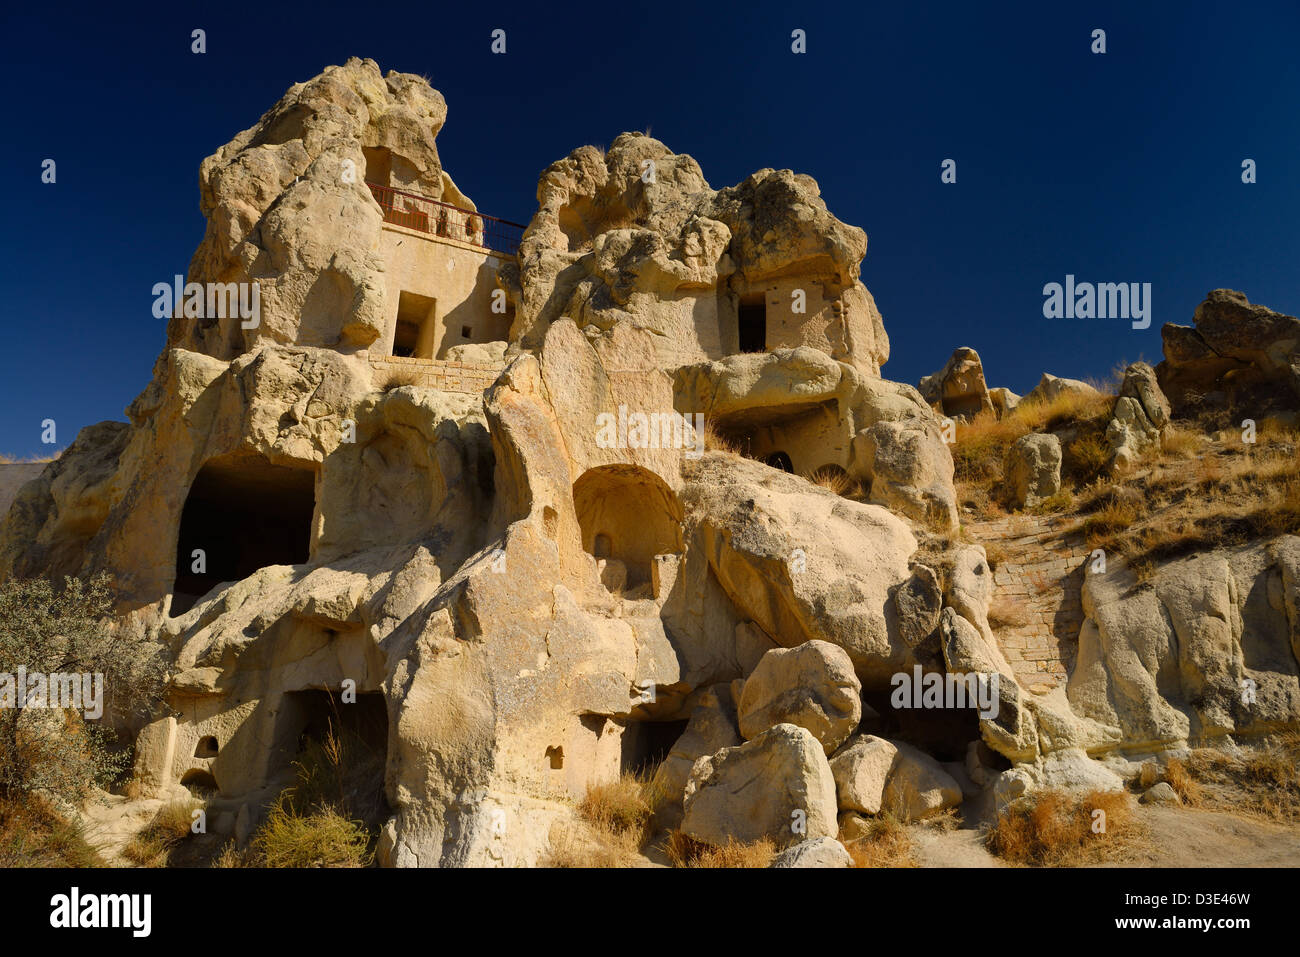 Cave monastery at Goreme Valley Open Air Museum Cappadocia Turkey - Stock Image